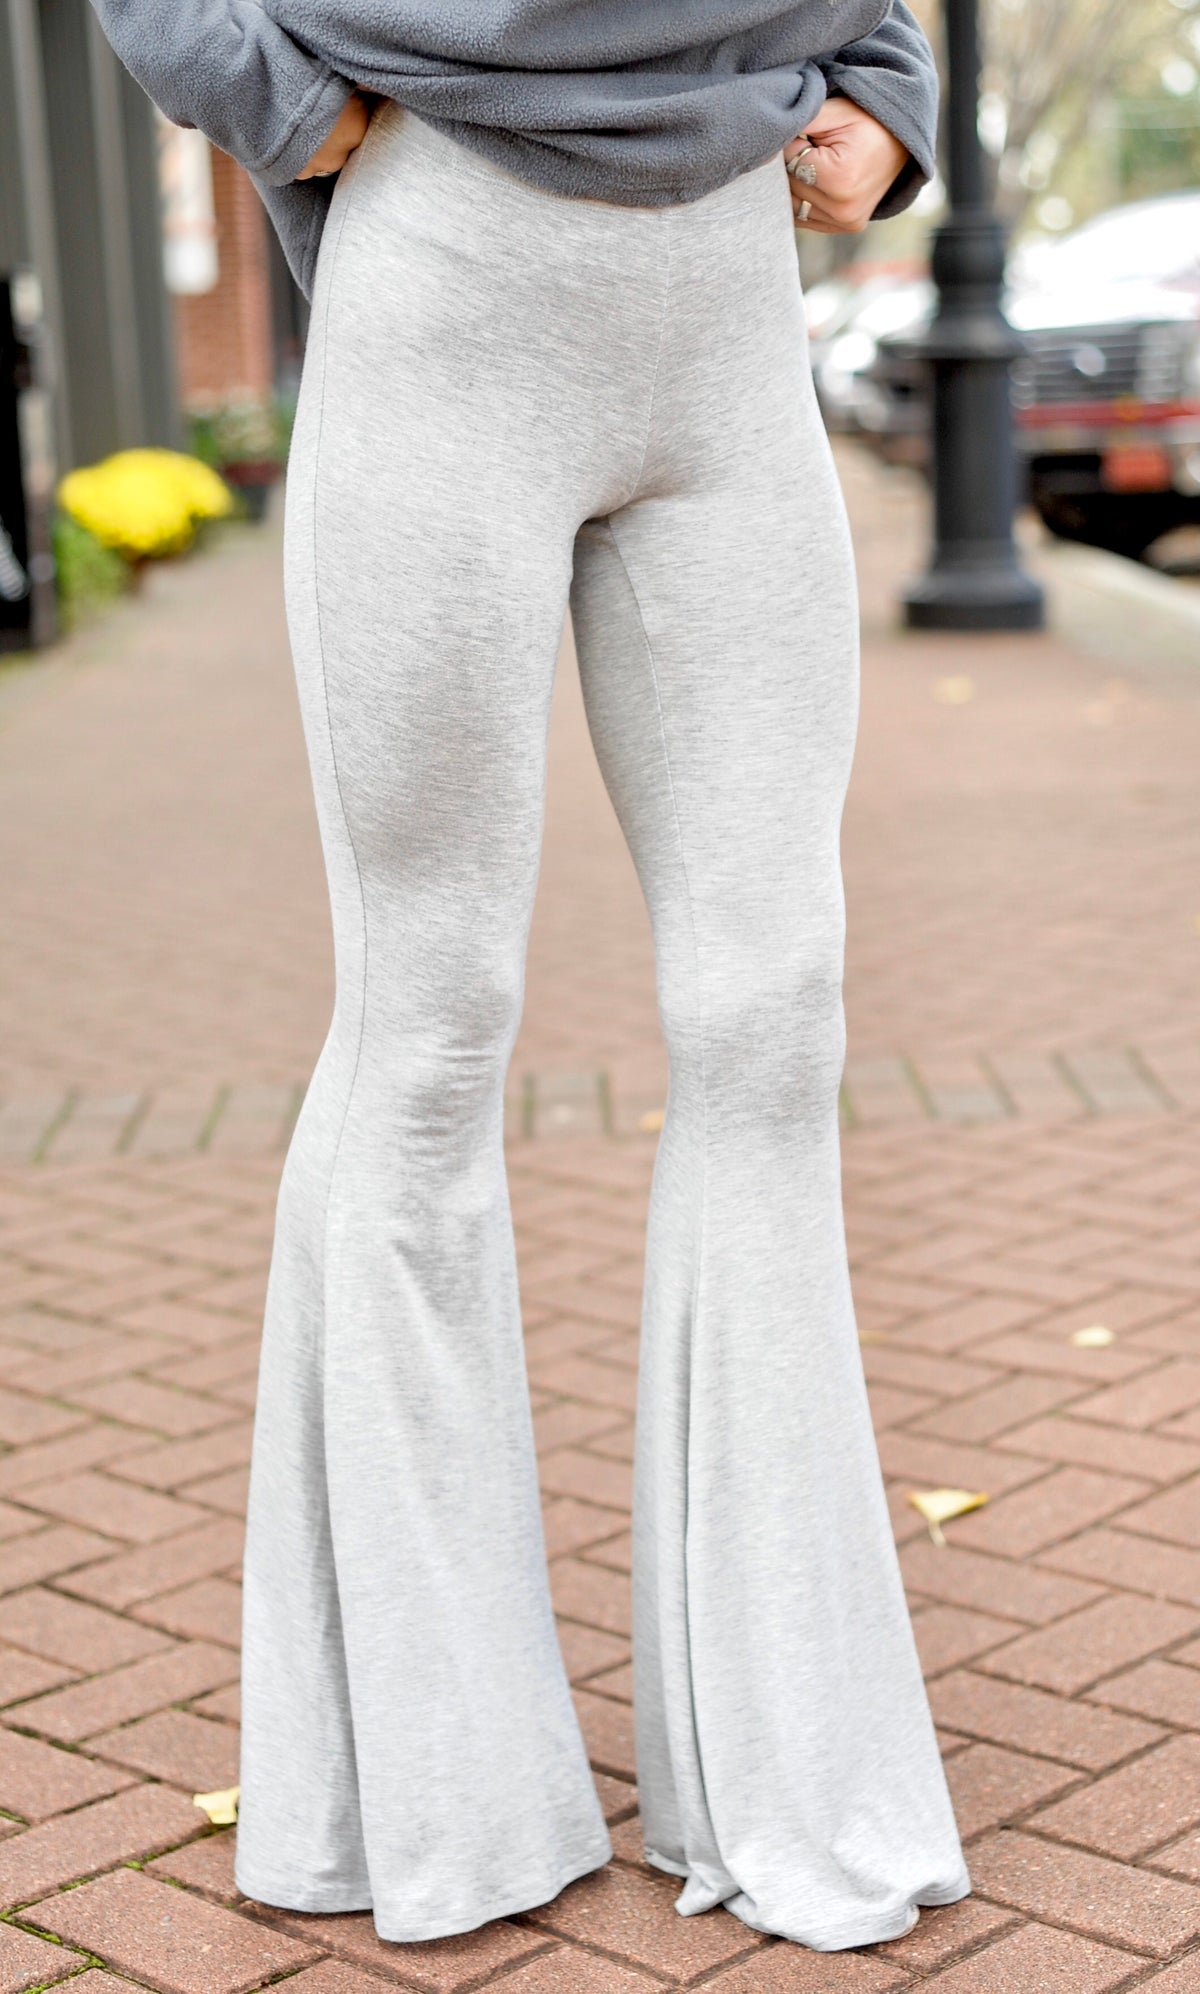 Grey Stretchy Yoga Pants